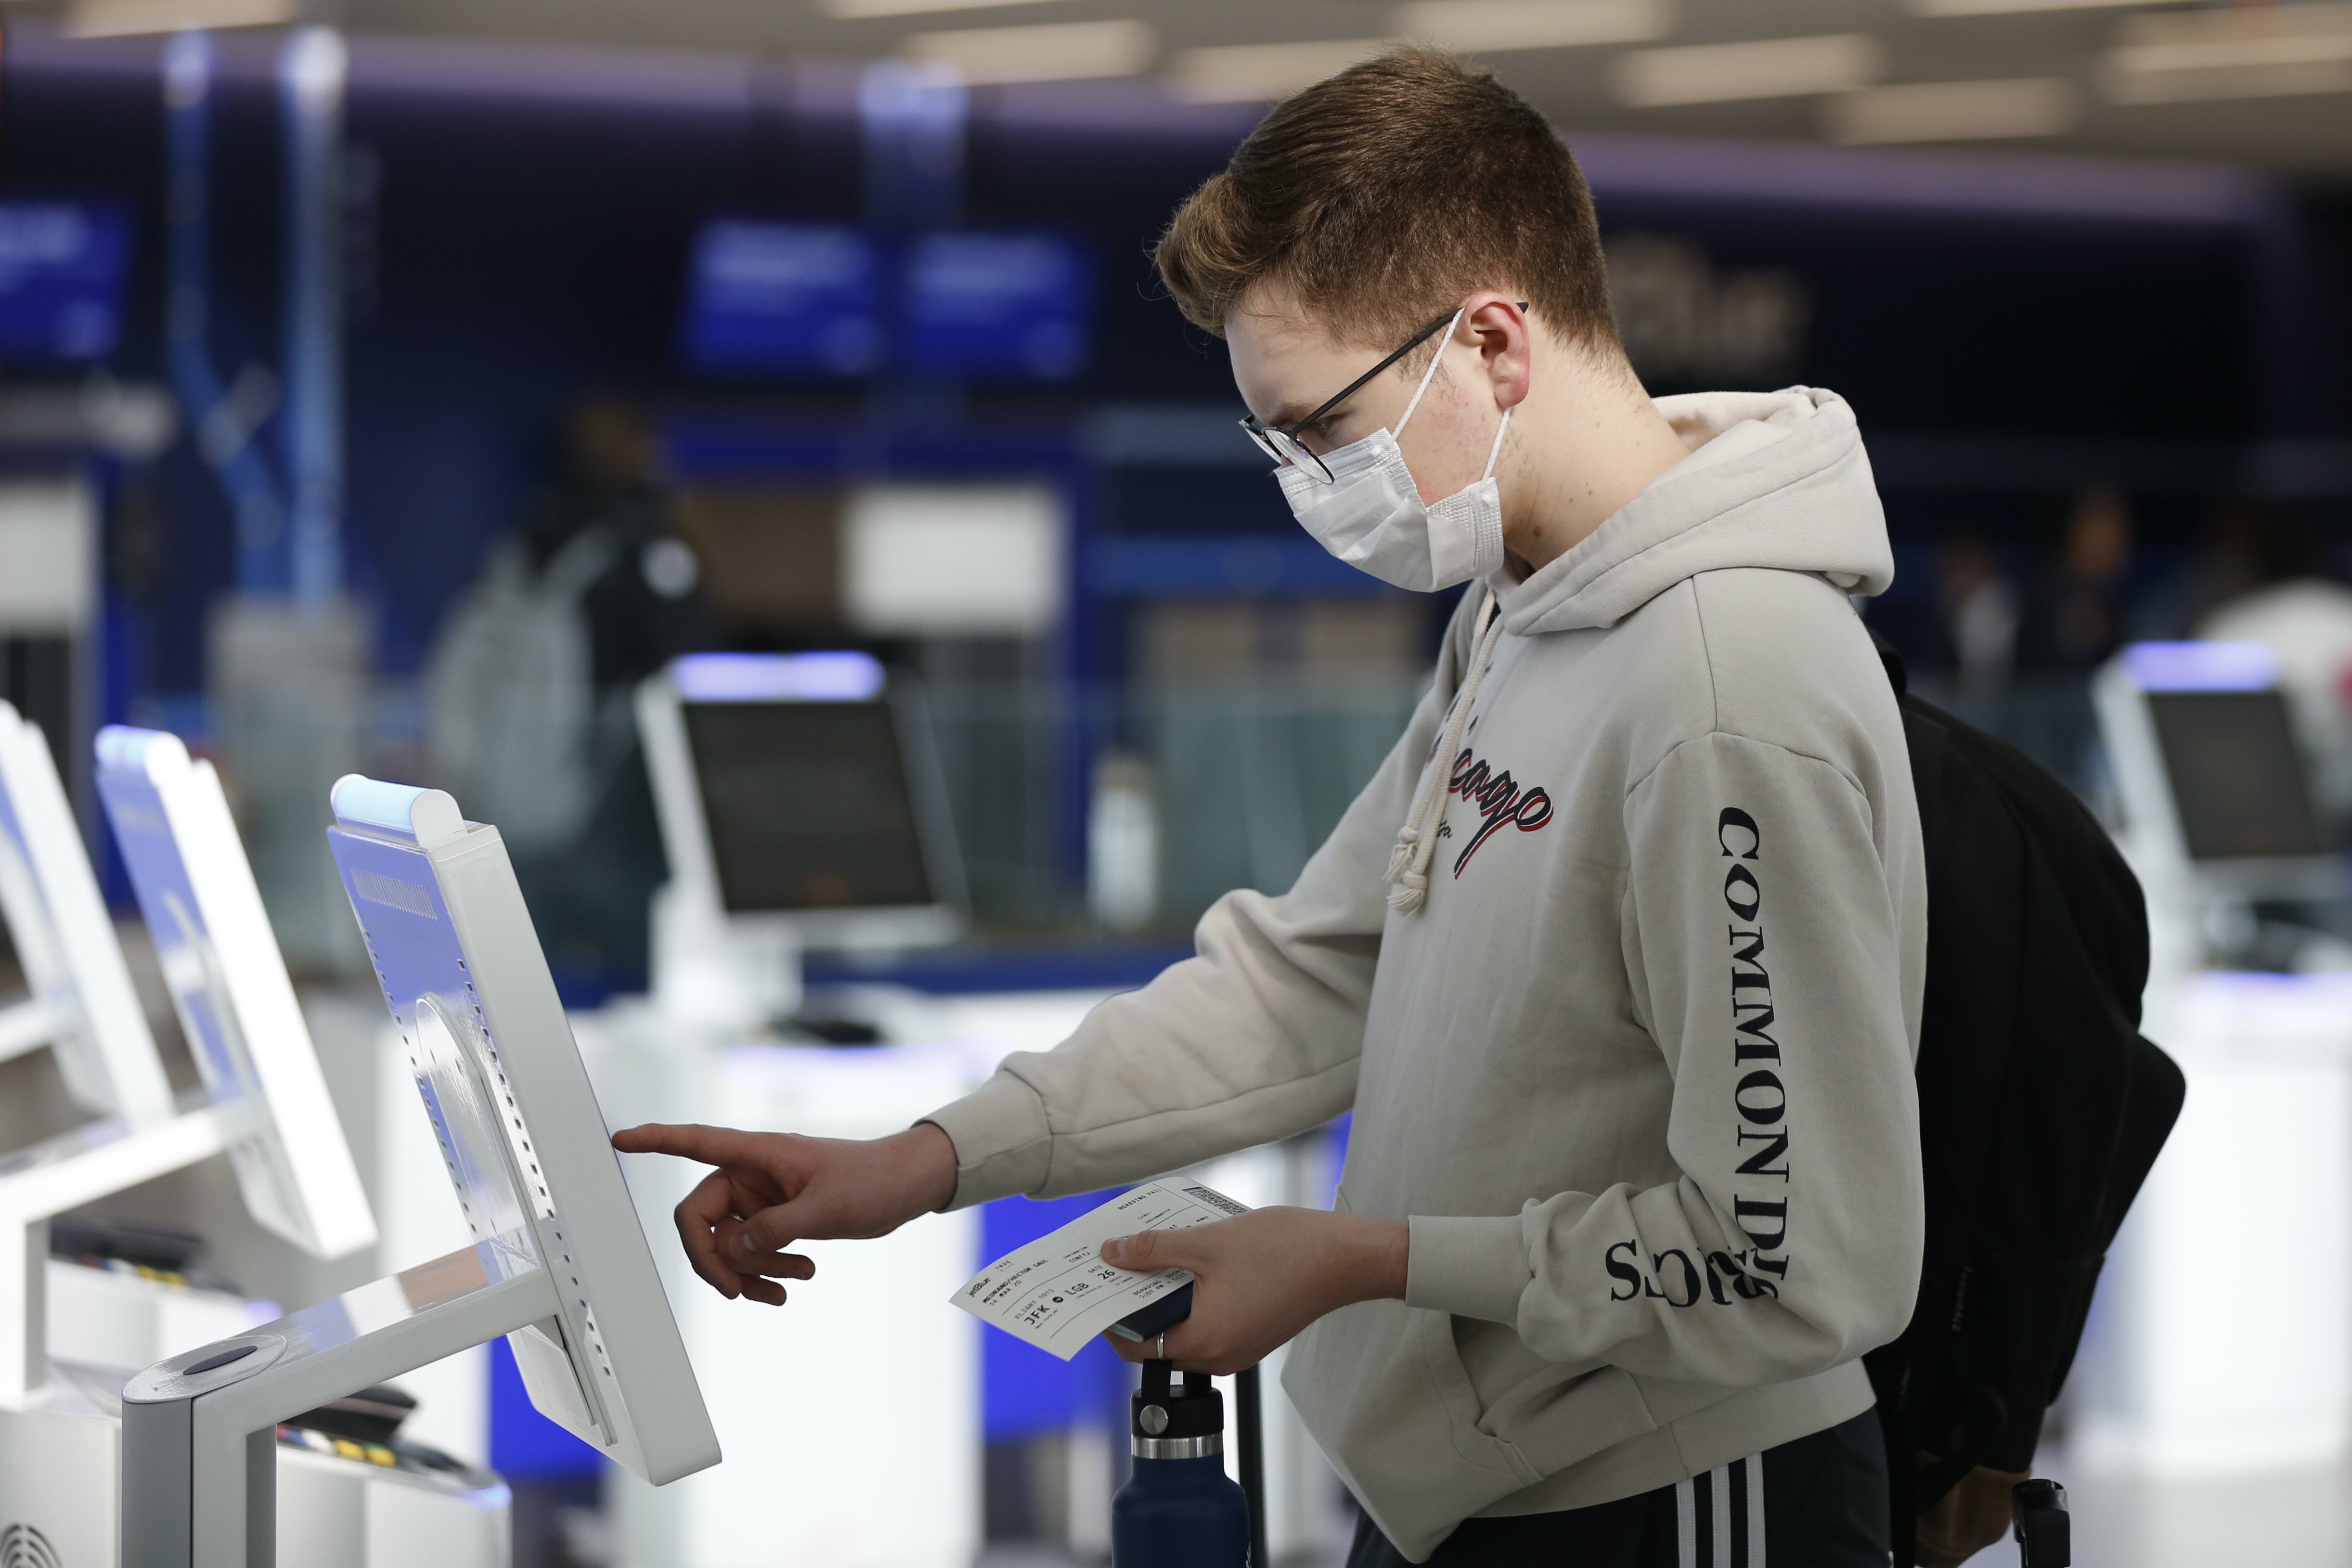 Passenger checks in using a touchscree